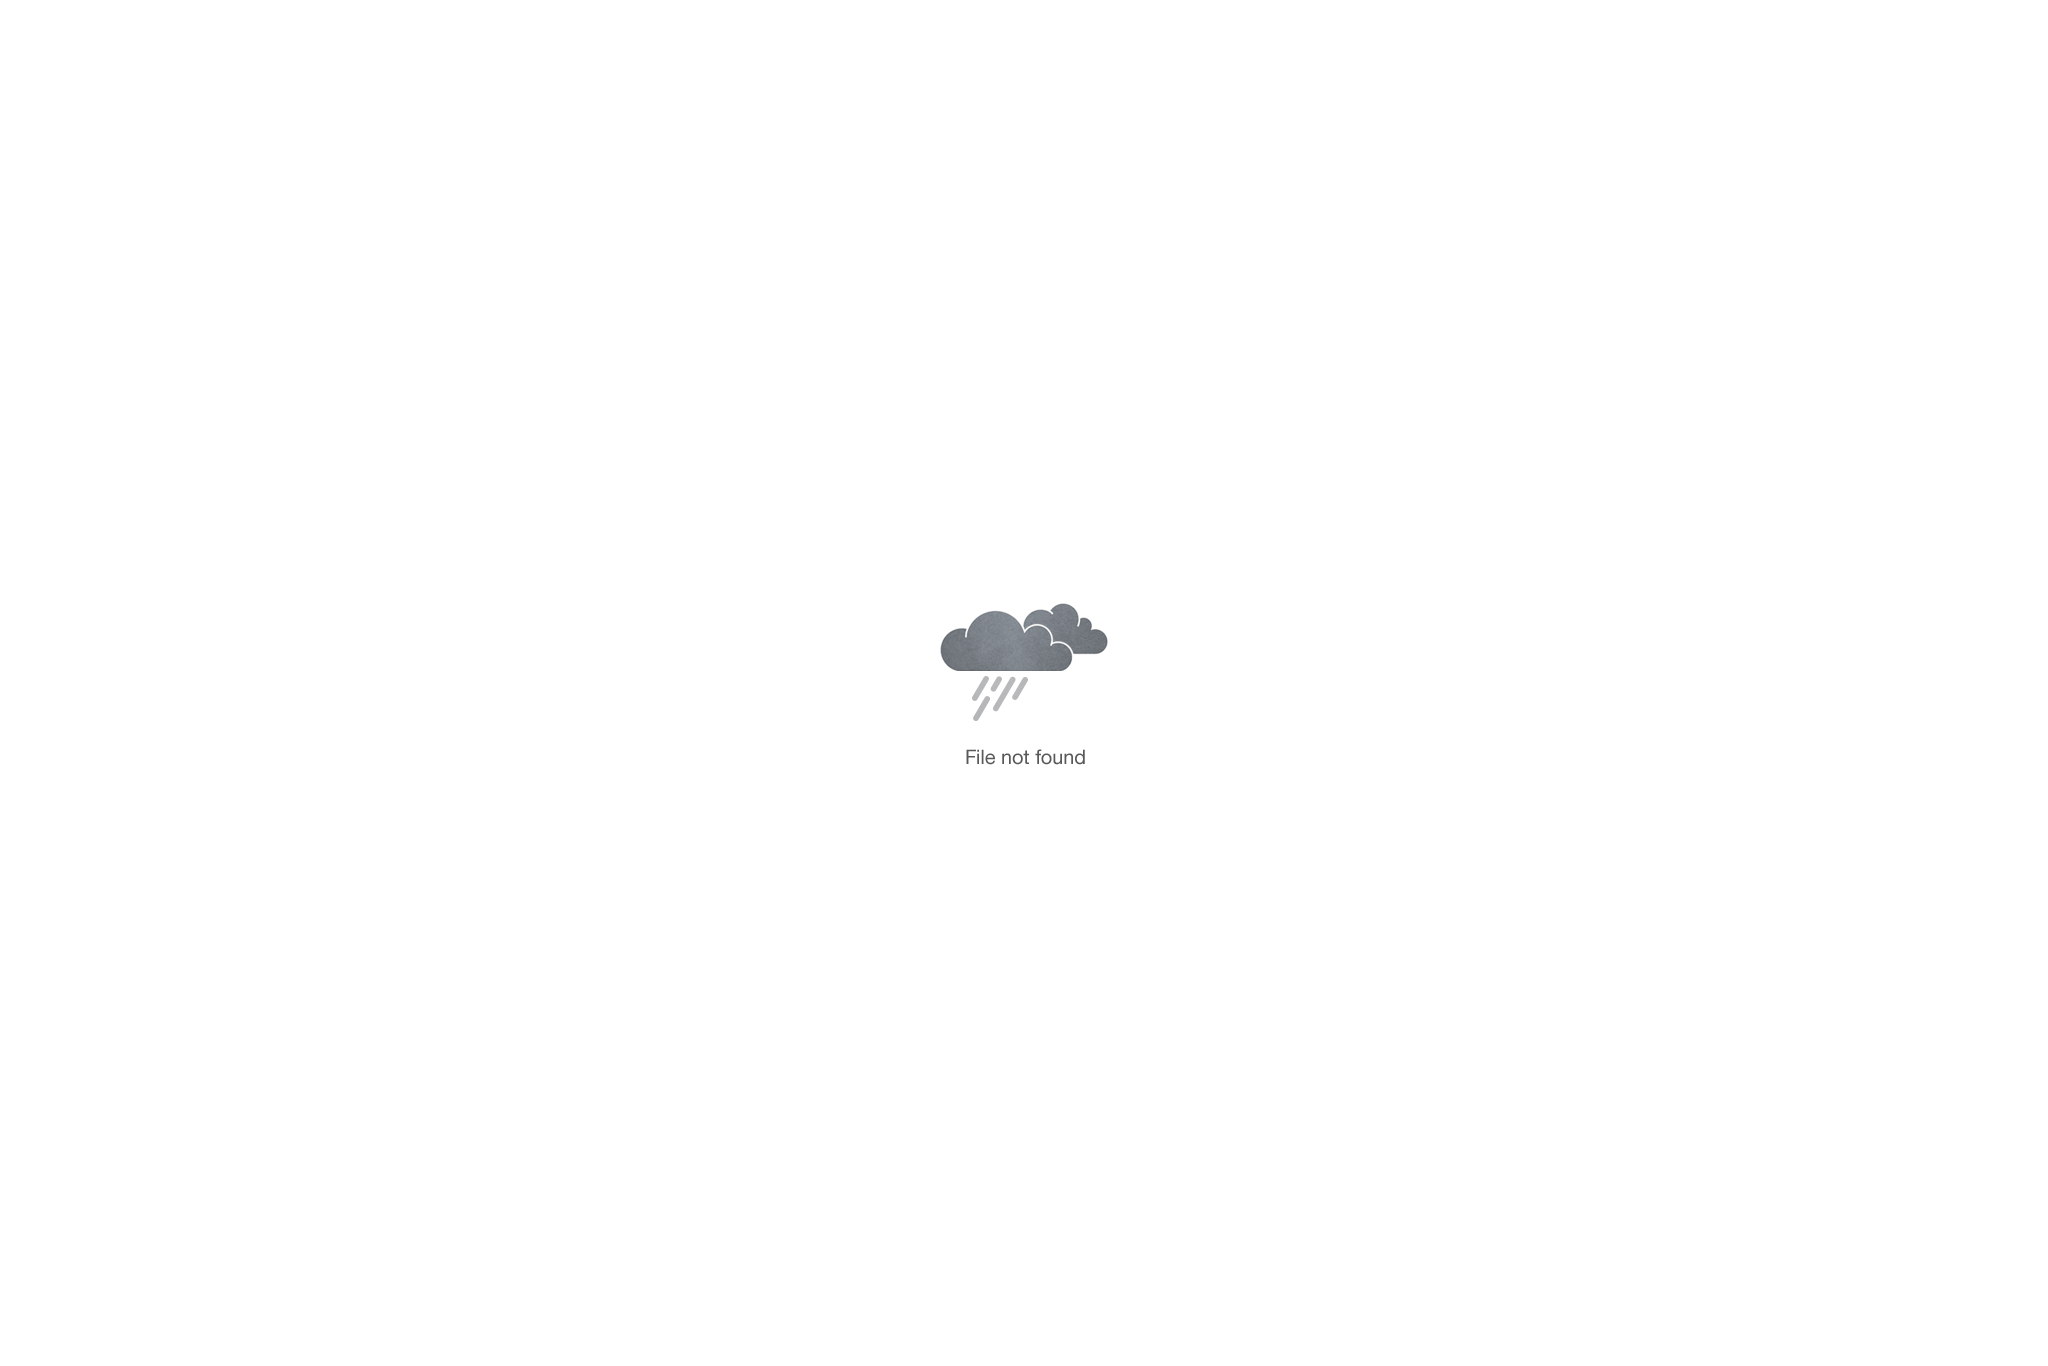 Equipe 1 féminine-Prénational - Chambery Volley Ball-Volley-Ball-Sponsorise-me-image-3